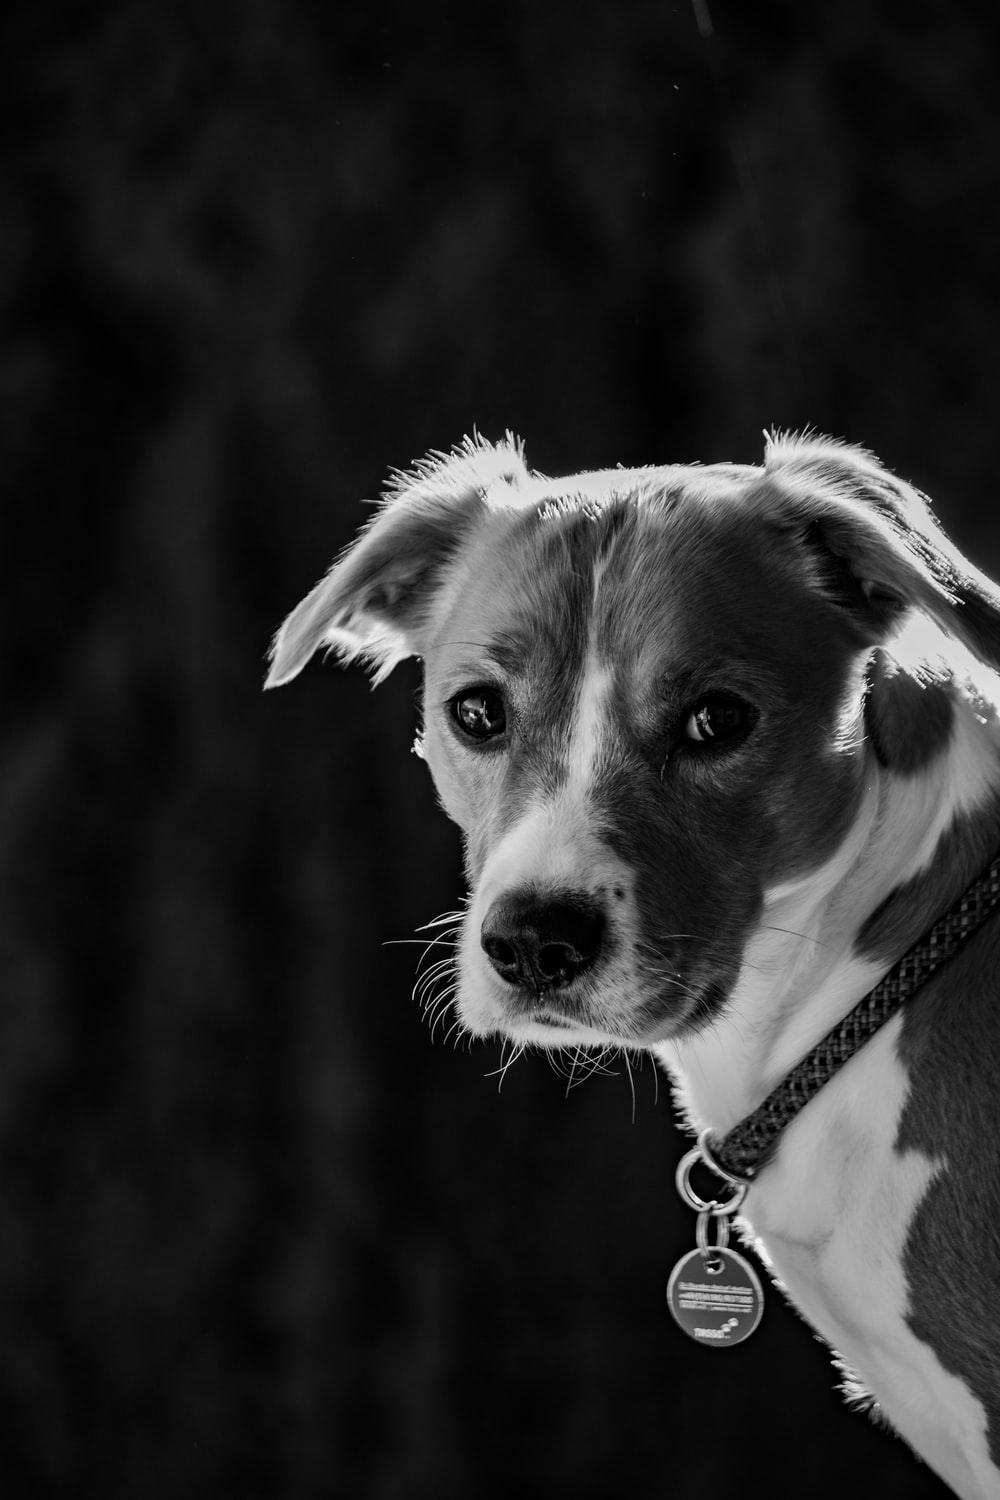 grayscale photo of puppy